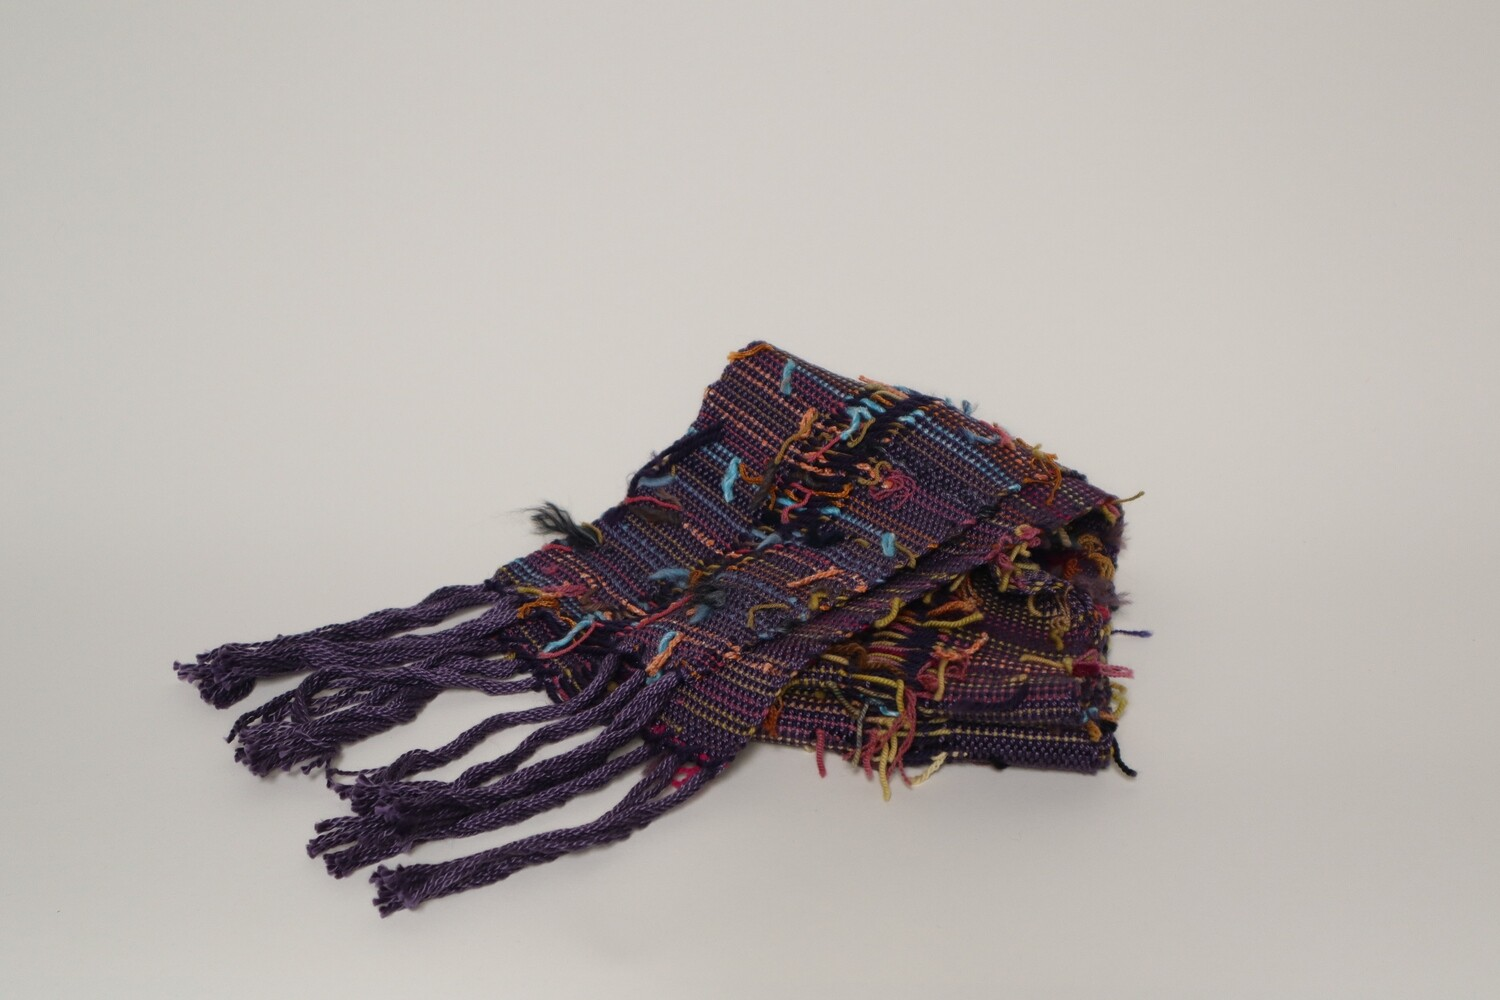 Scarf or table runner made from reused materials